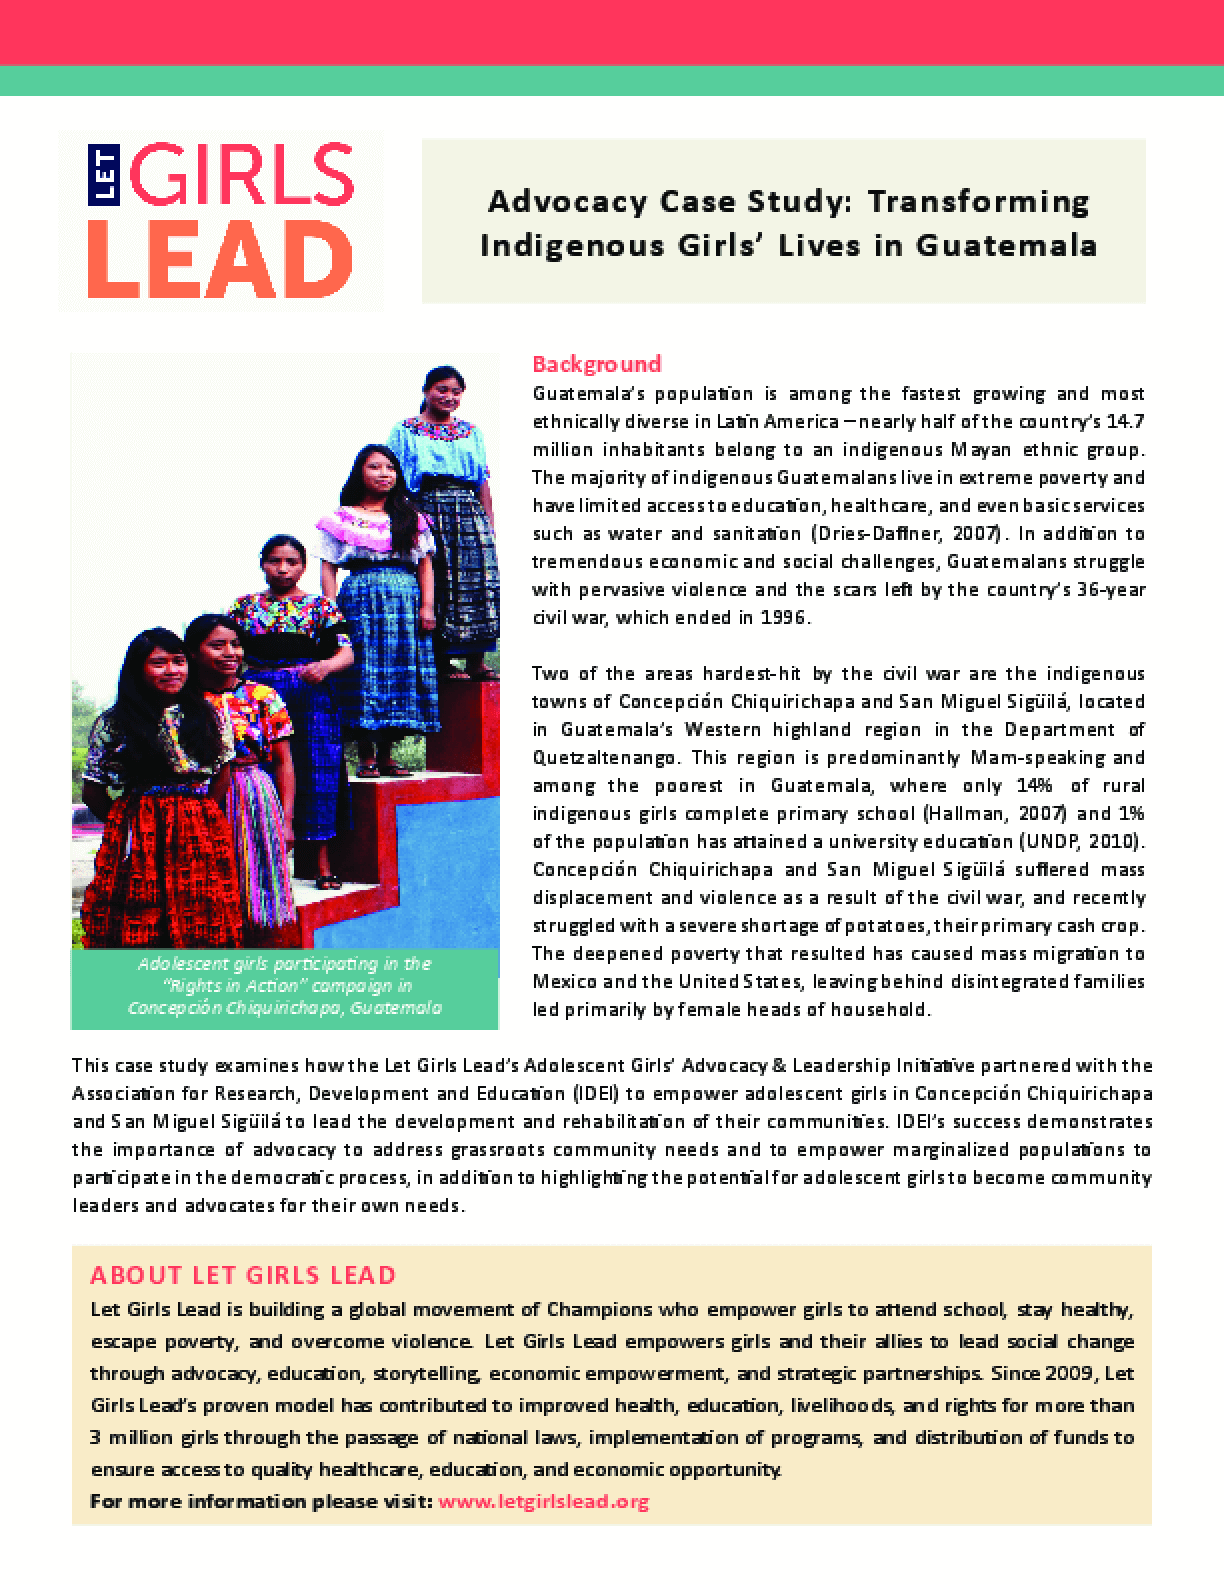 Advocacy Case Study: Transforming Indigenous Girls' Lives in Guatemala